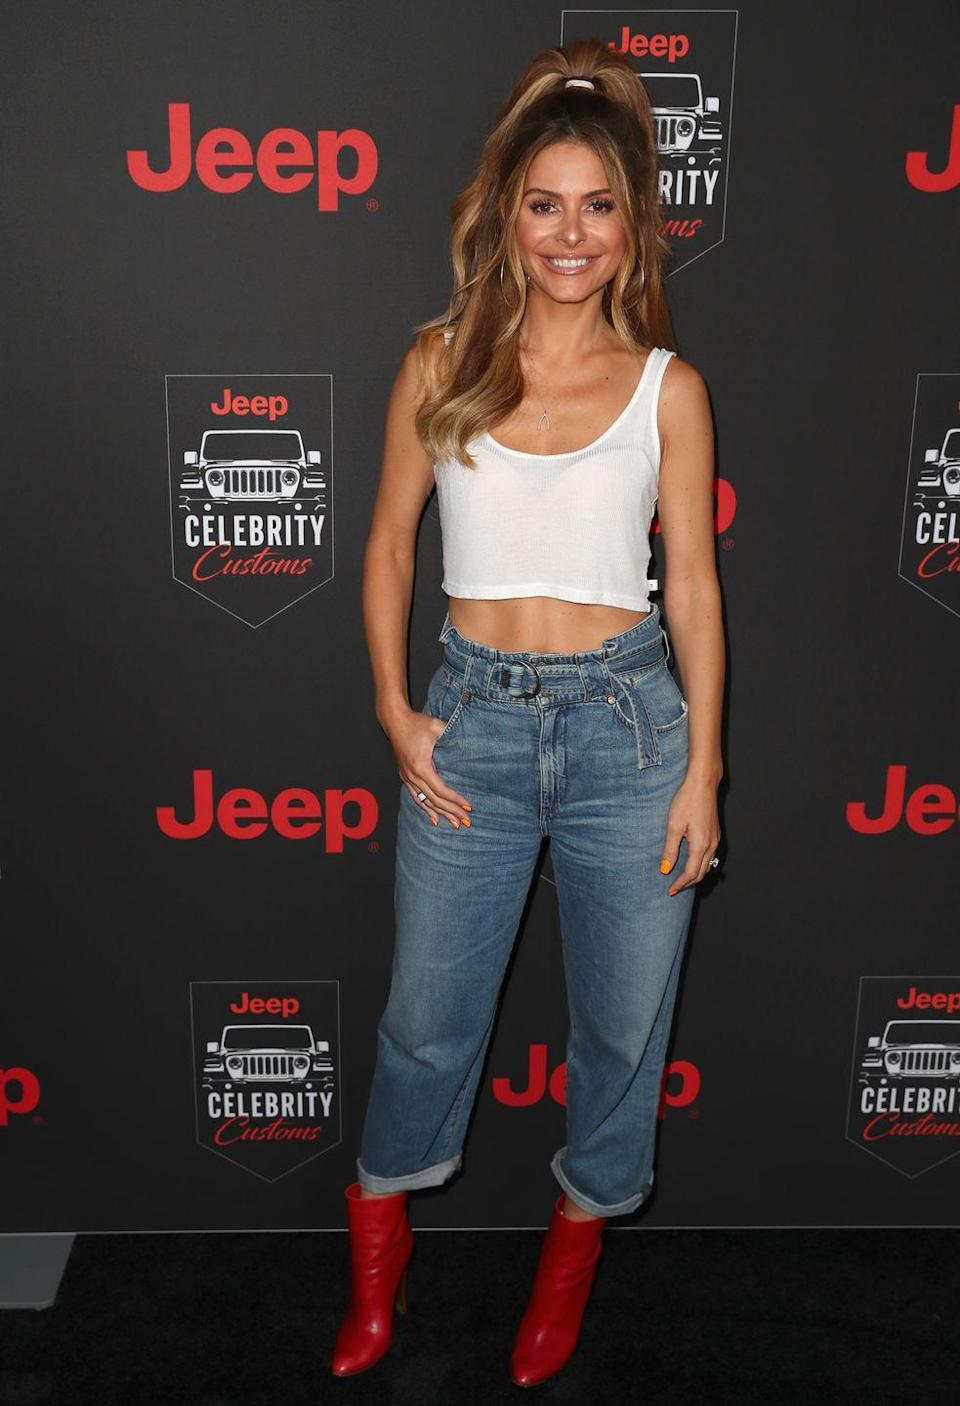 "<p>The TV host appeared on <em>Dancing with the Stars</em> in 2012, which <a href=""https://www.womenshealthmag.com/life/a19931805/maria-menounos-interview/"" rel=""nofollow noopener"" target=""_blank"" data-ylk=""slk:she said"" class=""link rapid-noclick-resp"">she said</a> was the best workout ever. ""My core got so tight, and my butt was like a rock! I have never been able to get my calves so defined,"" she said. She's clearly maintained that body post-<em>DWTS</em>.</p>"